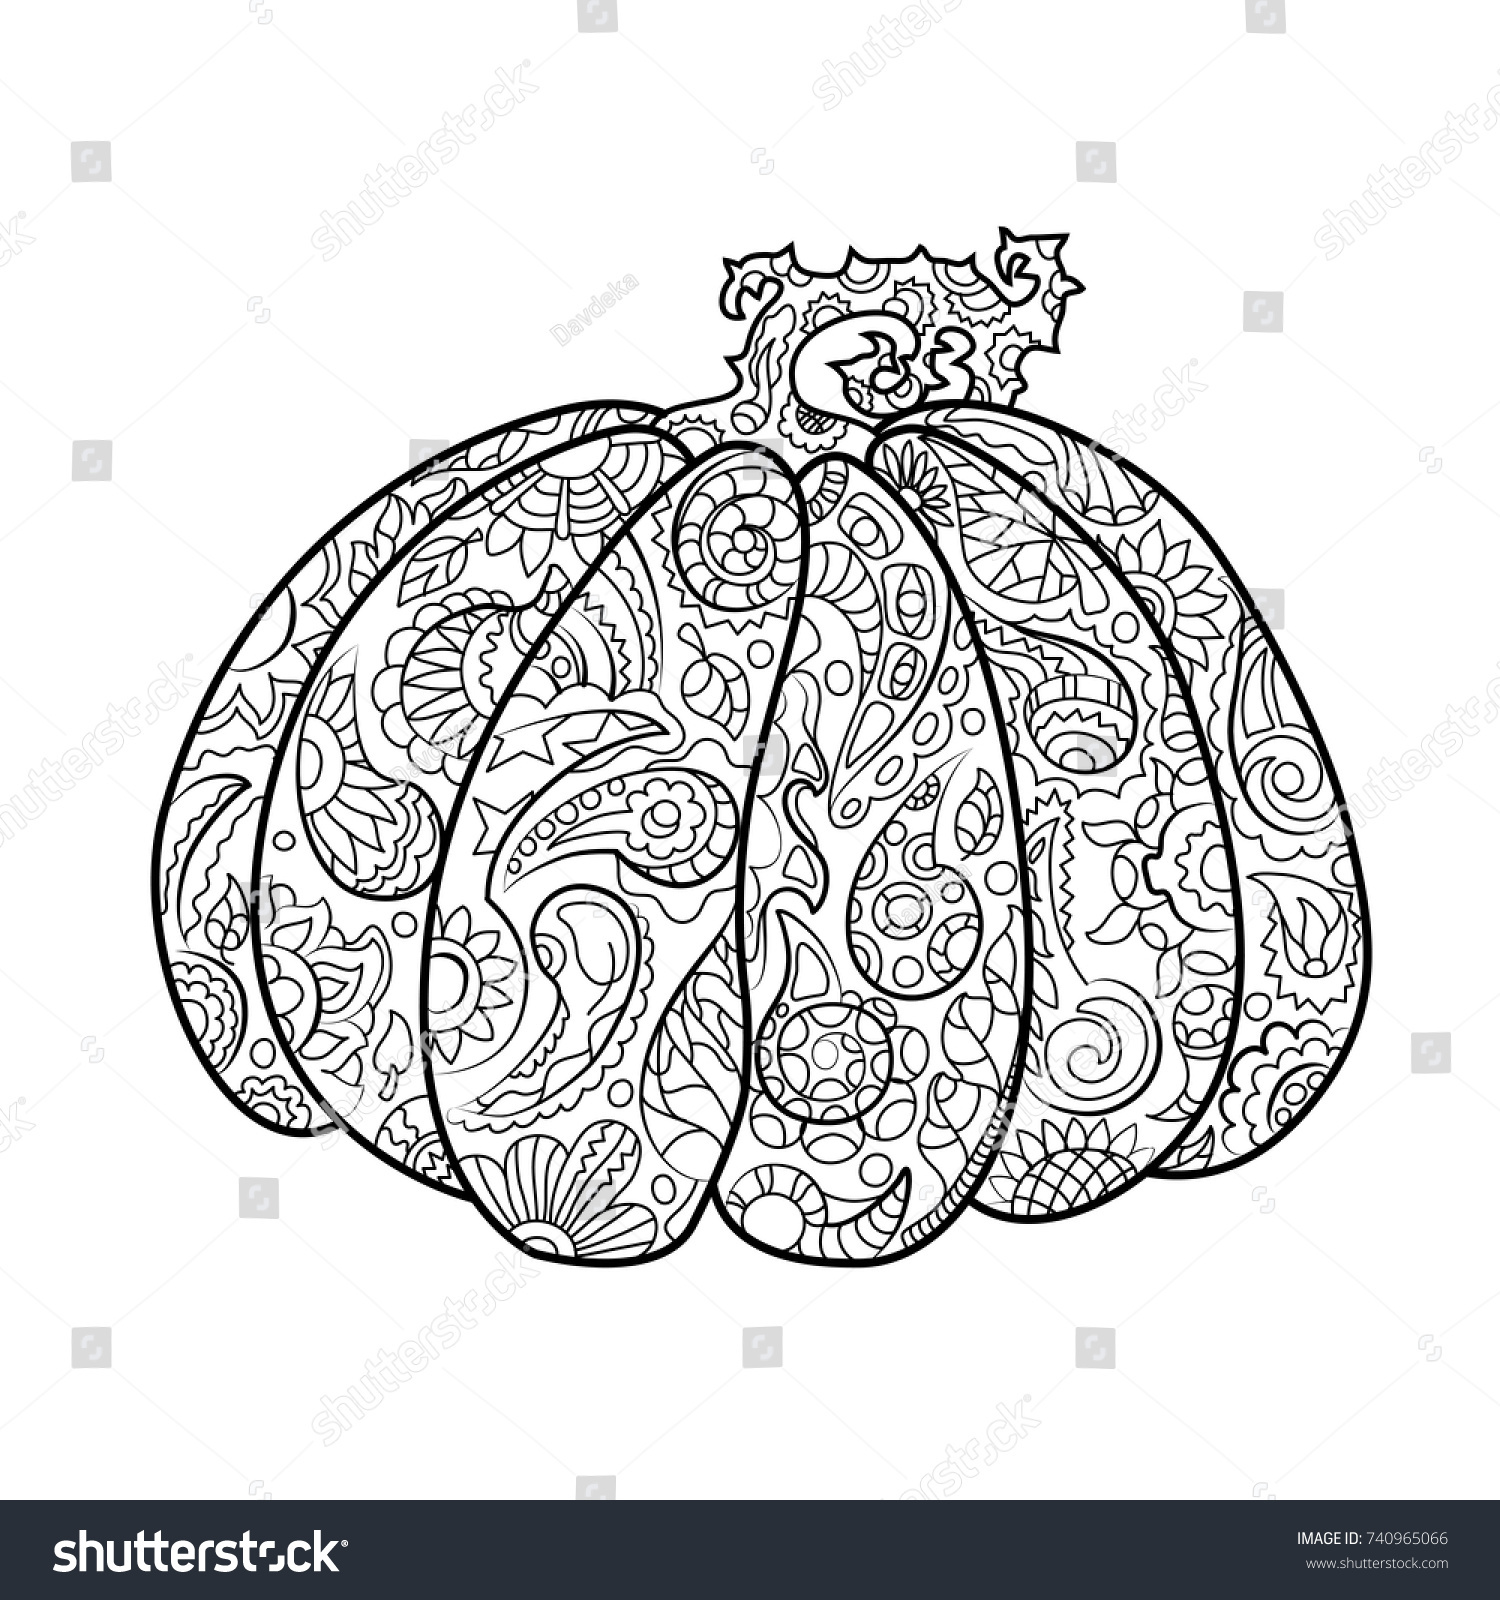 Pumpkin Ornament Coloring Page Halloween Coloring Stock Vector ...